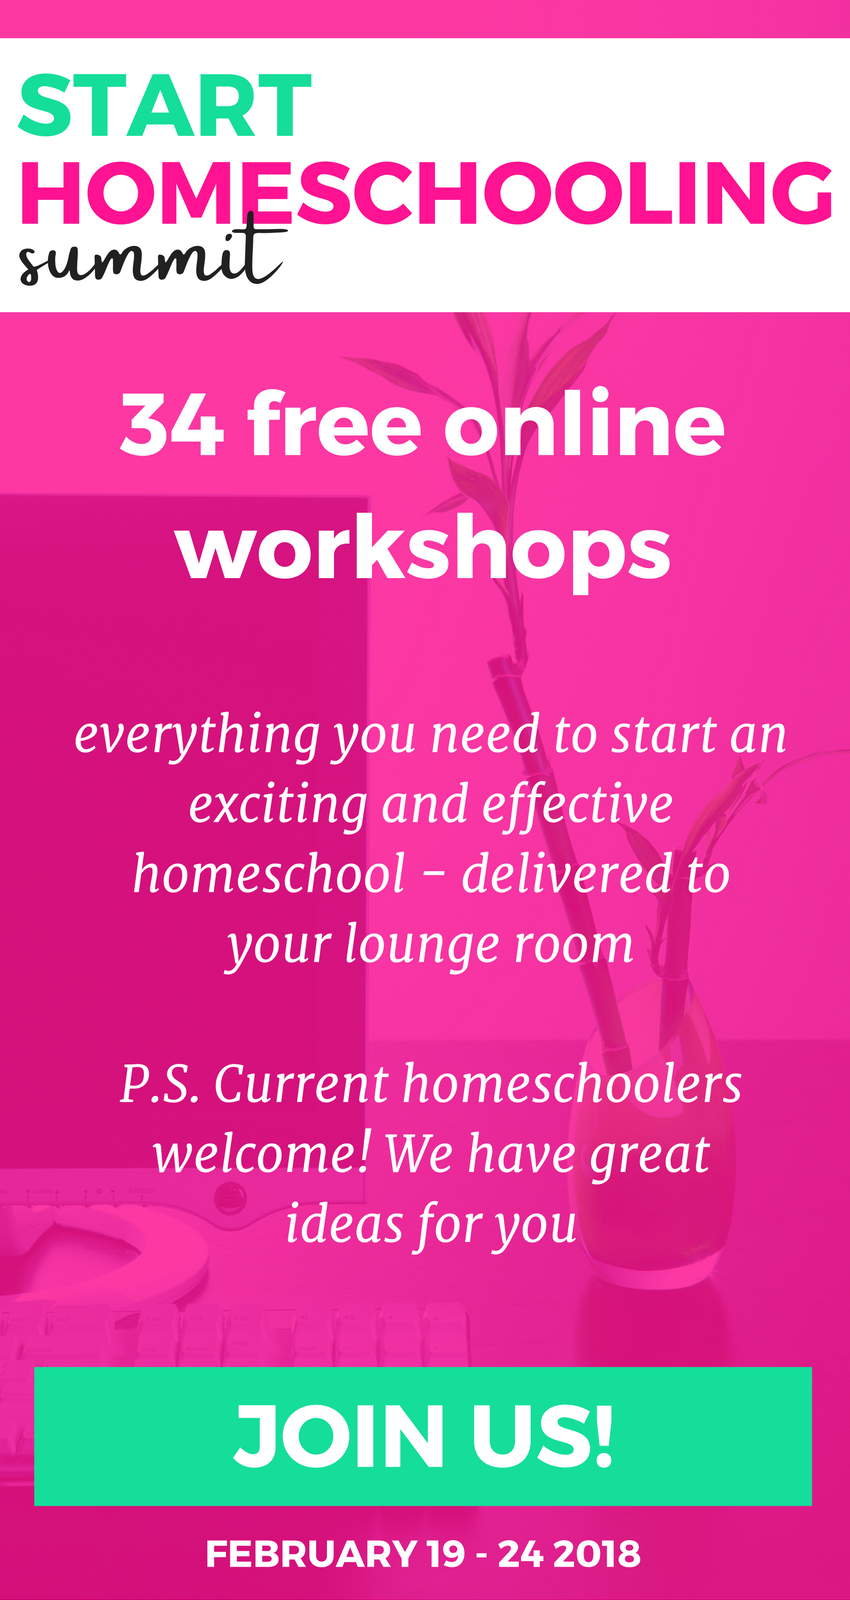 Start Homeschooling Summit 2018 - join us for 35 fantastic and FREE homeschooling workshops!